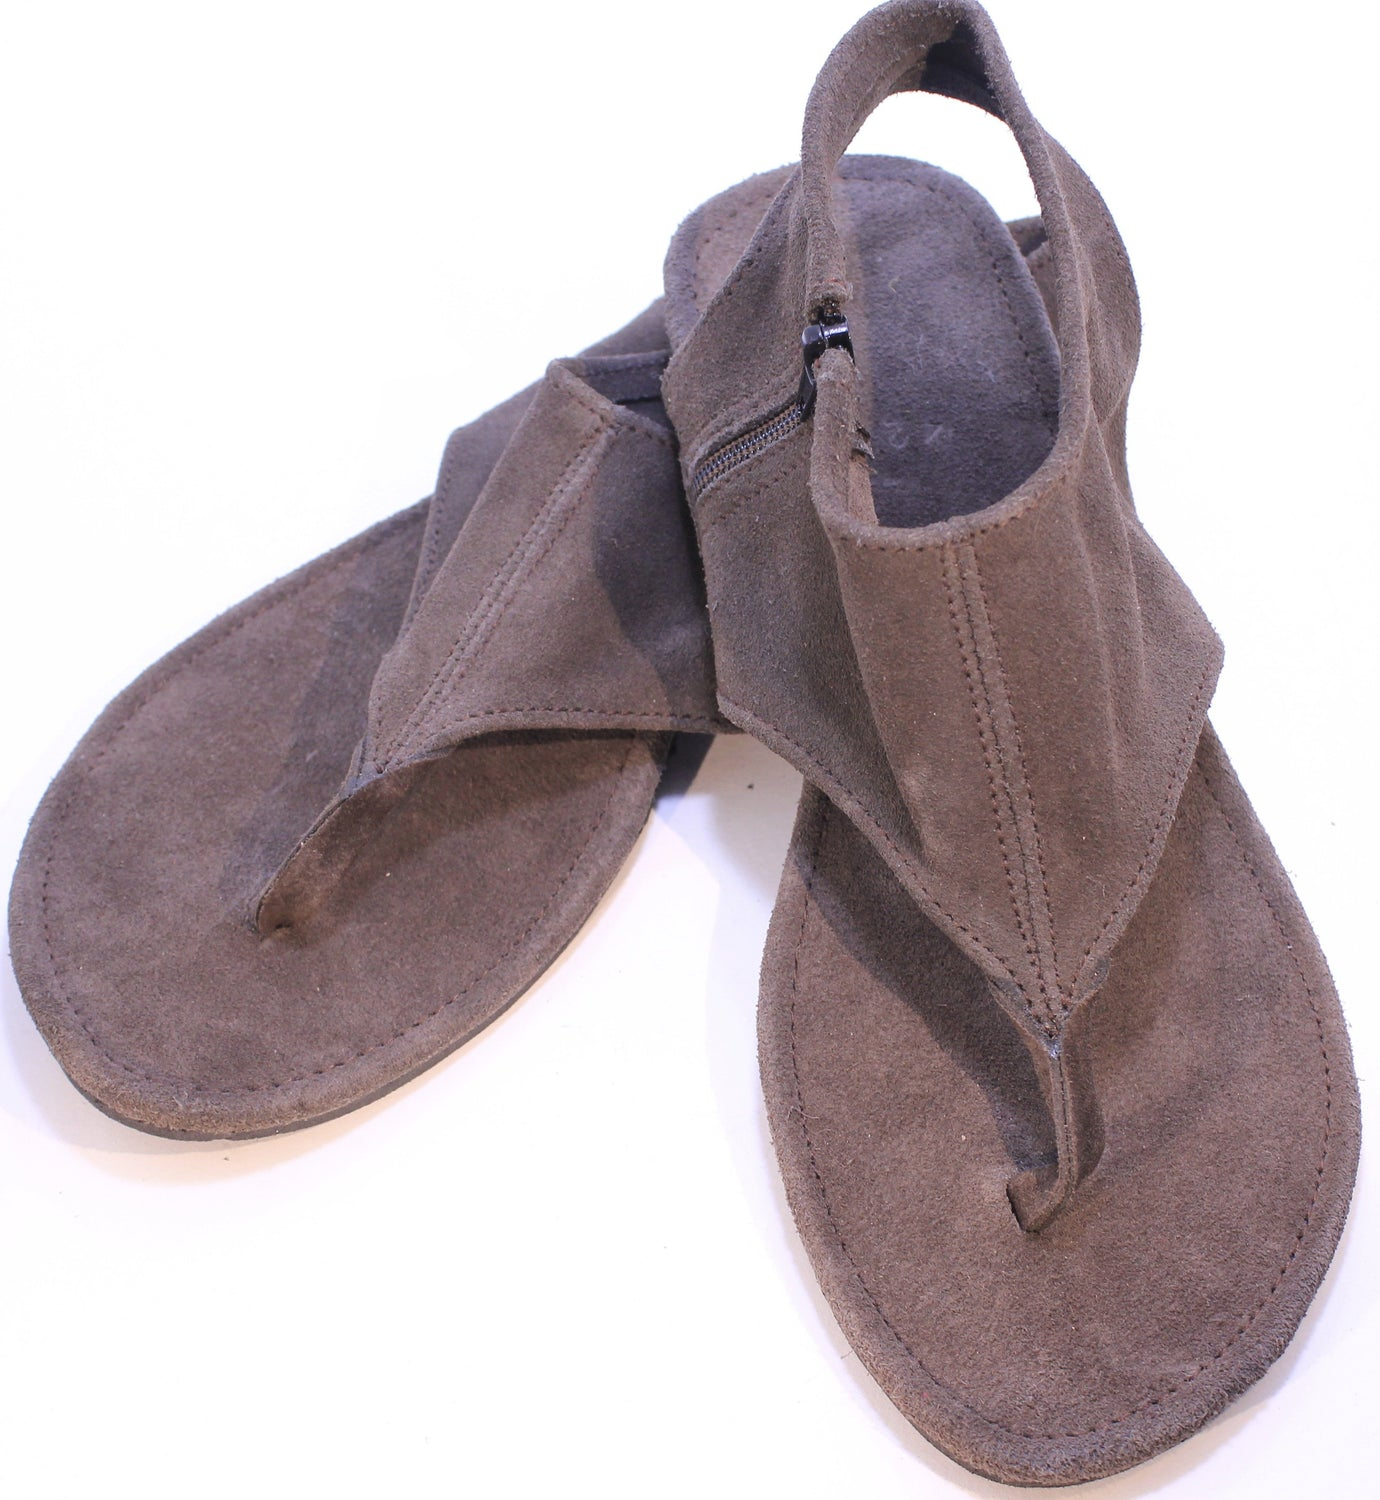 Indian Suede Sandal Shoes in three colors!